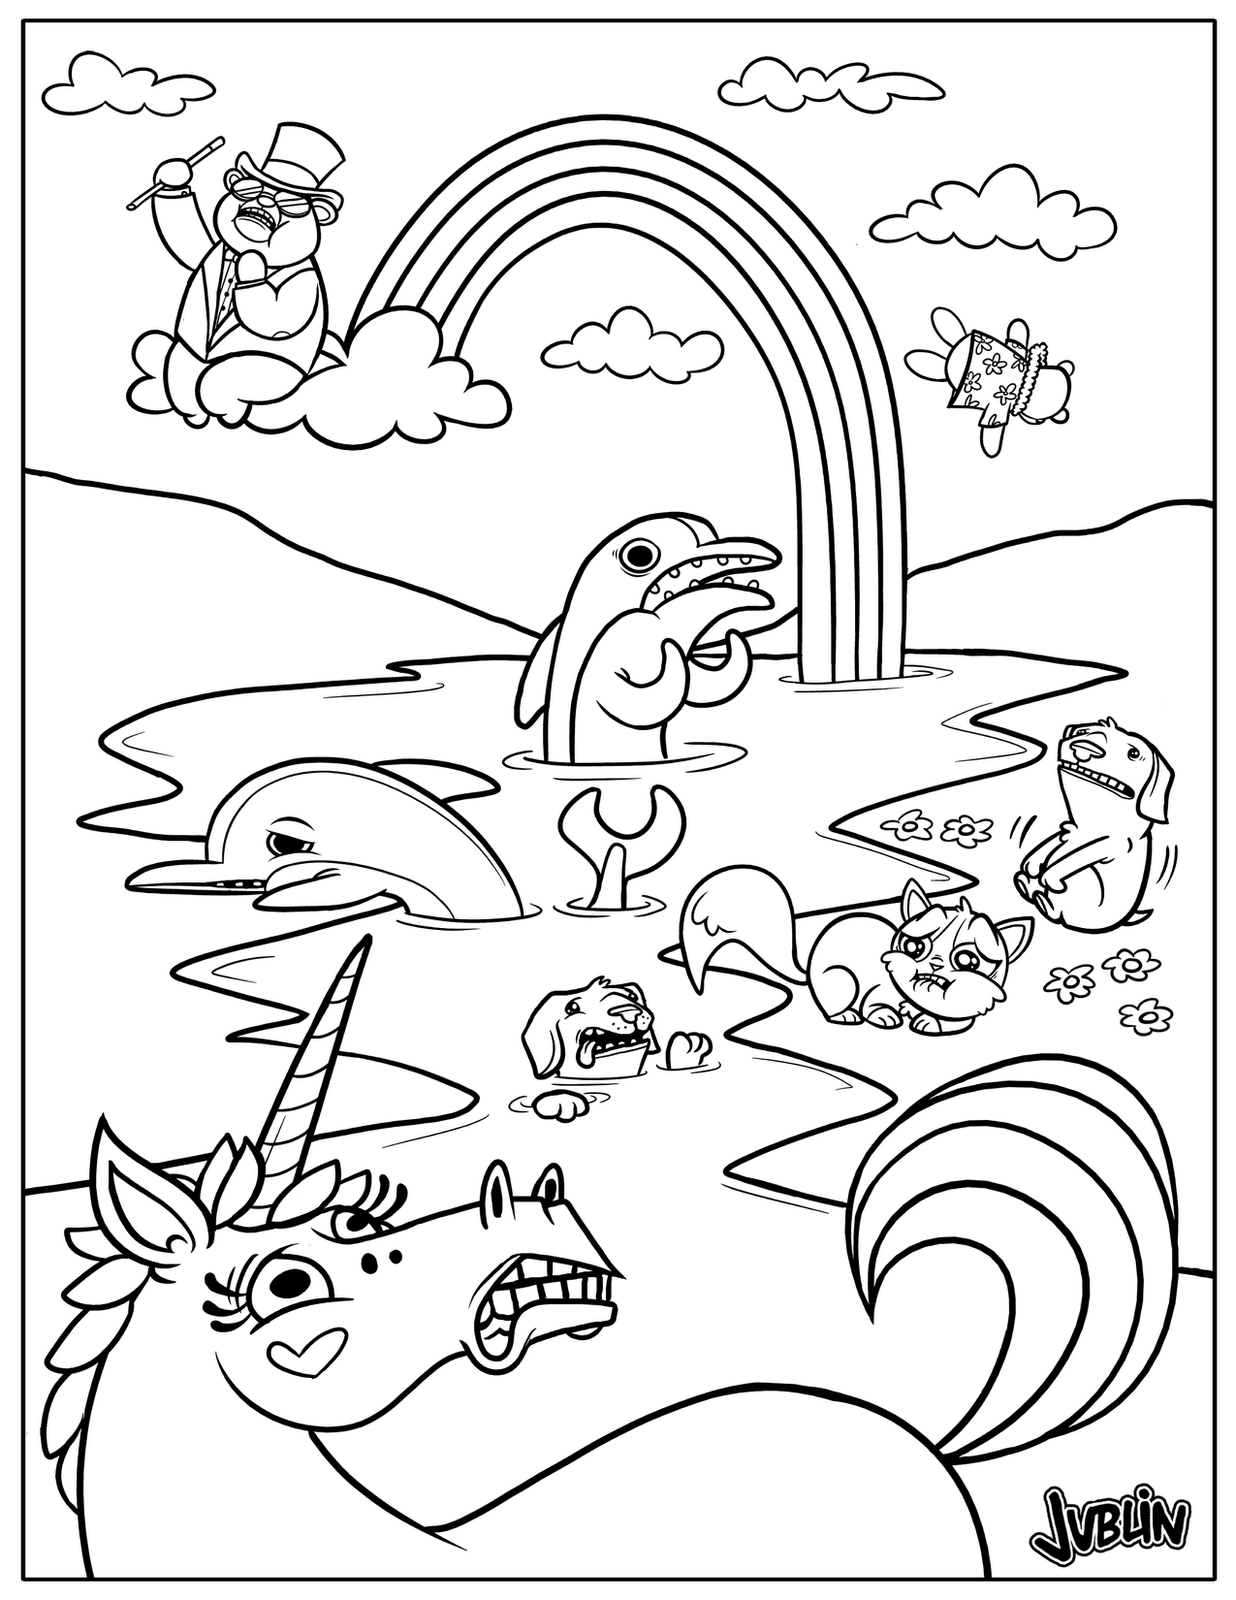 Super Punch: Oil Spill coloring page | colouring | Pinterest